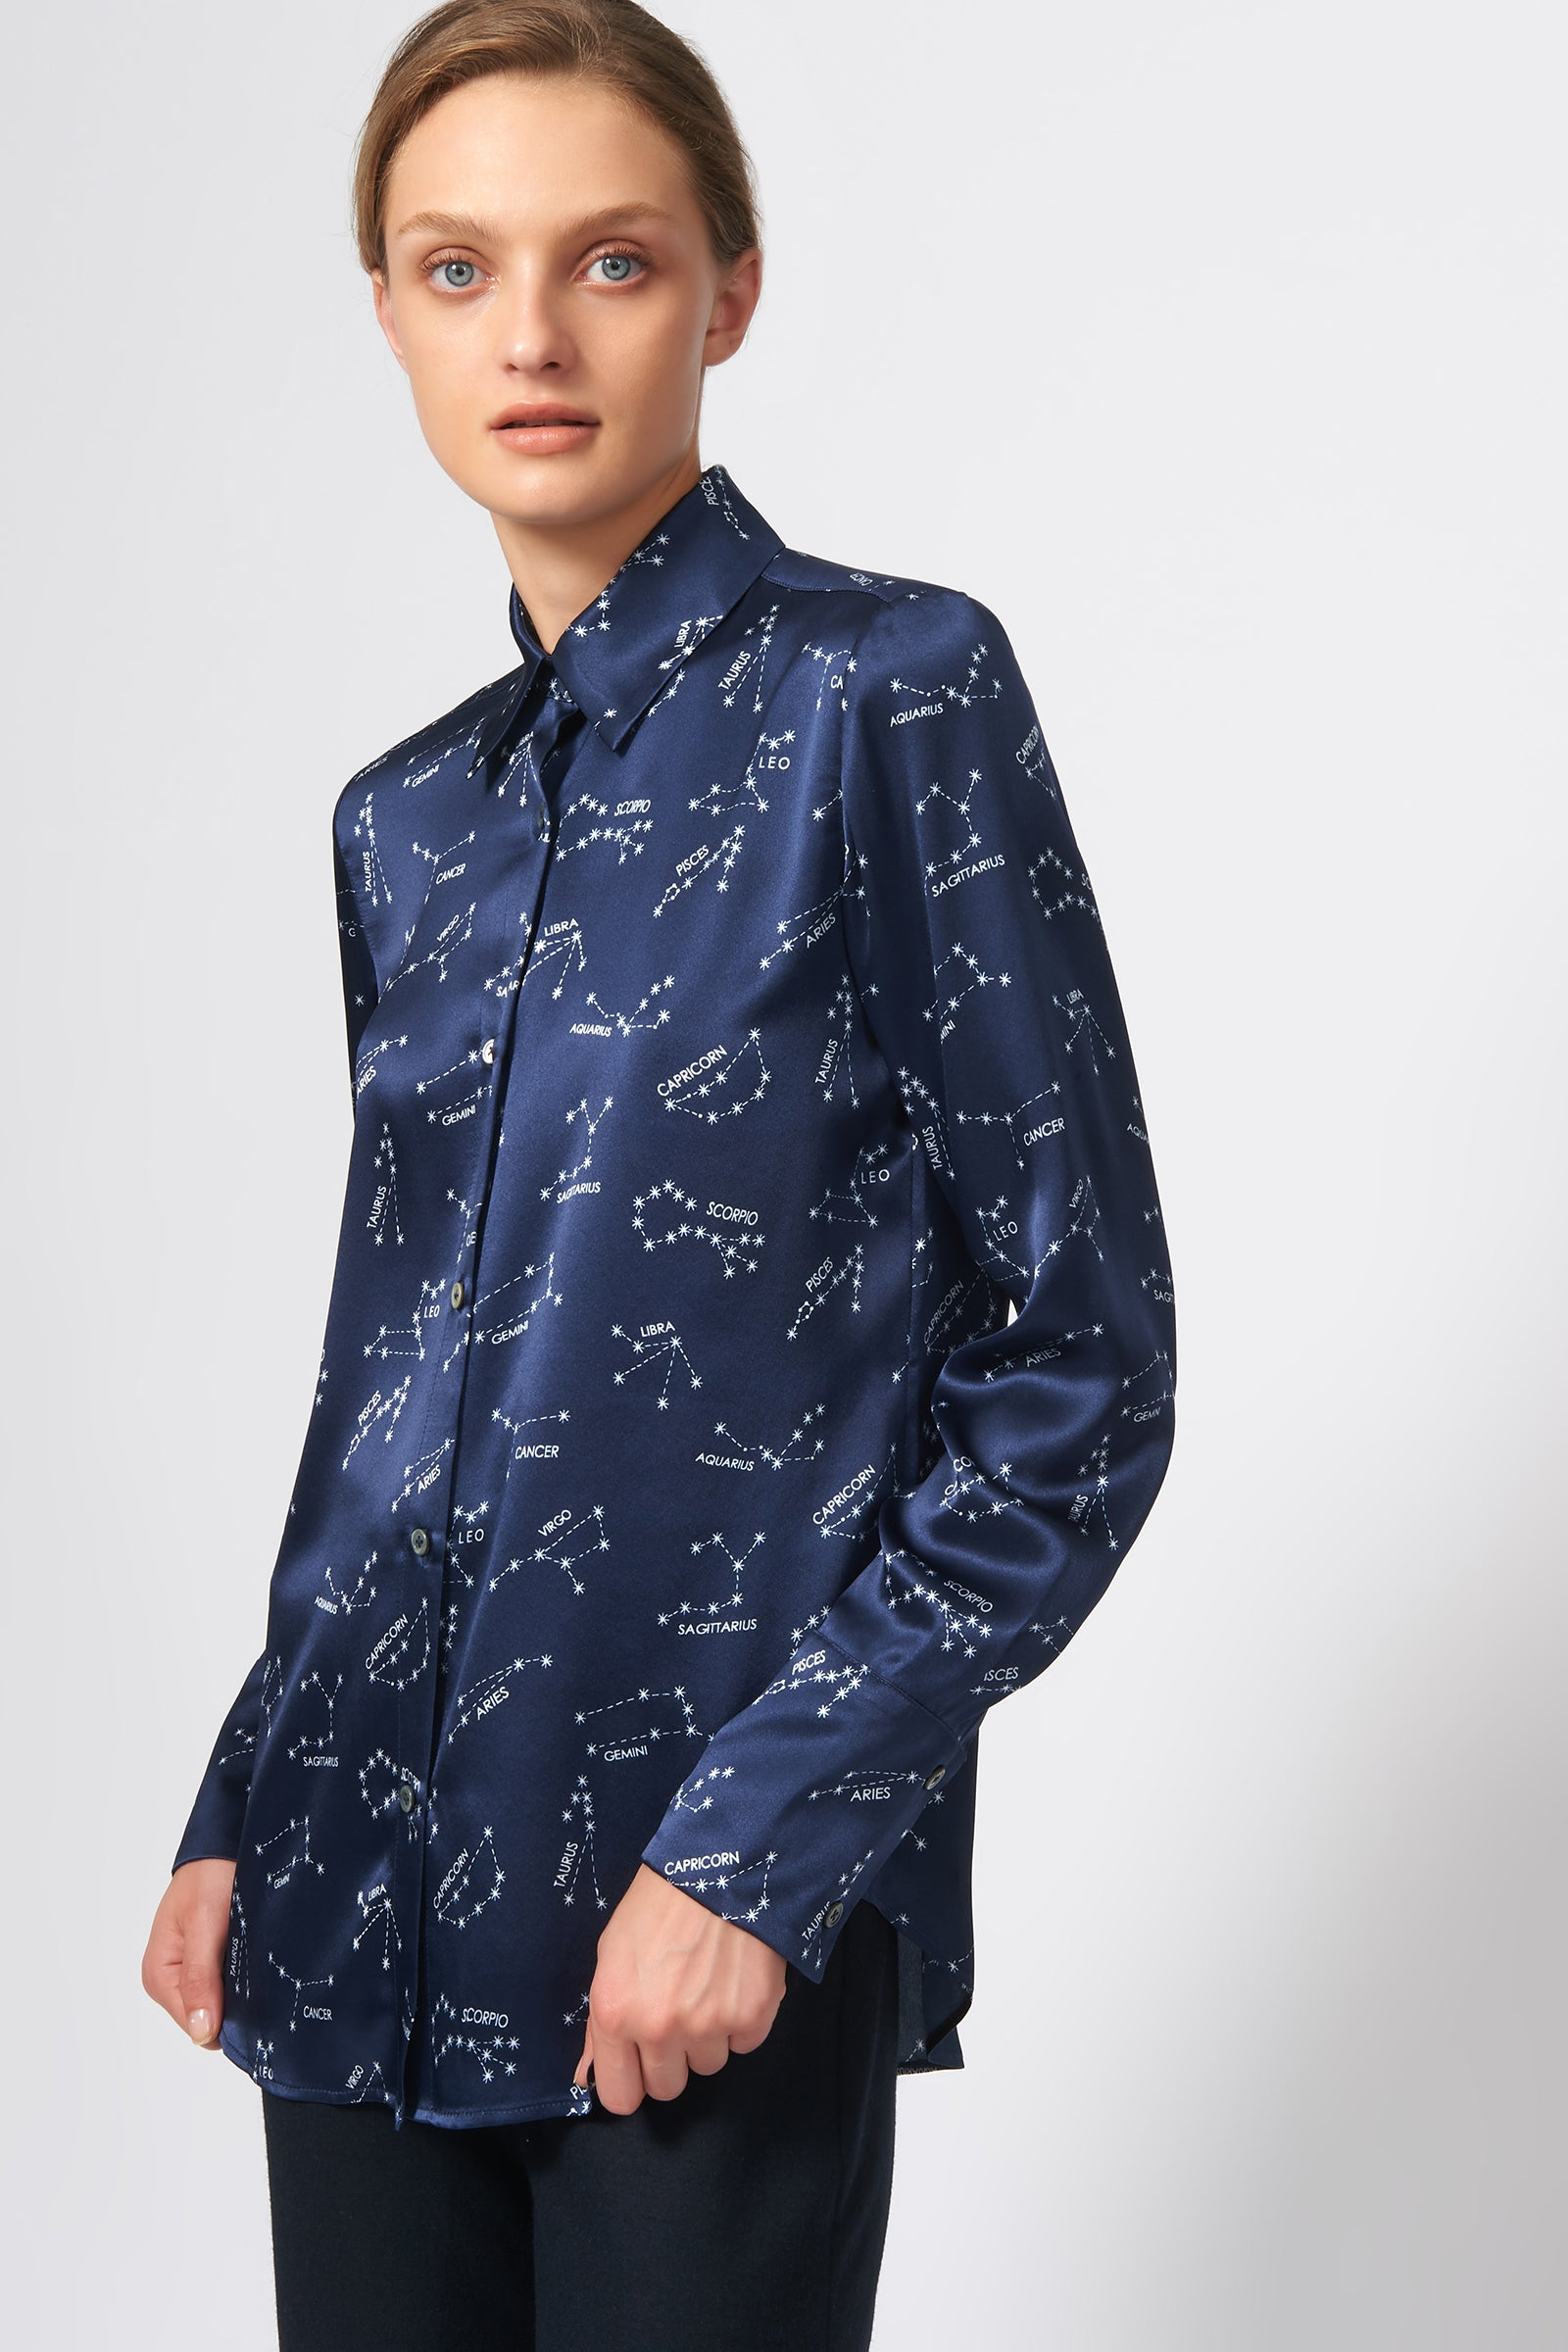 Kal Rieman Classic Tailored Blouse in Navy Horoscope Print on Model Front View